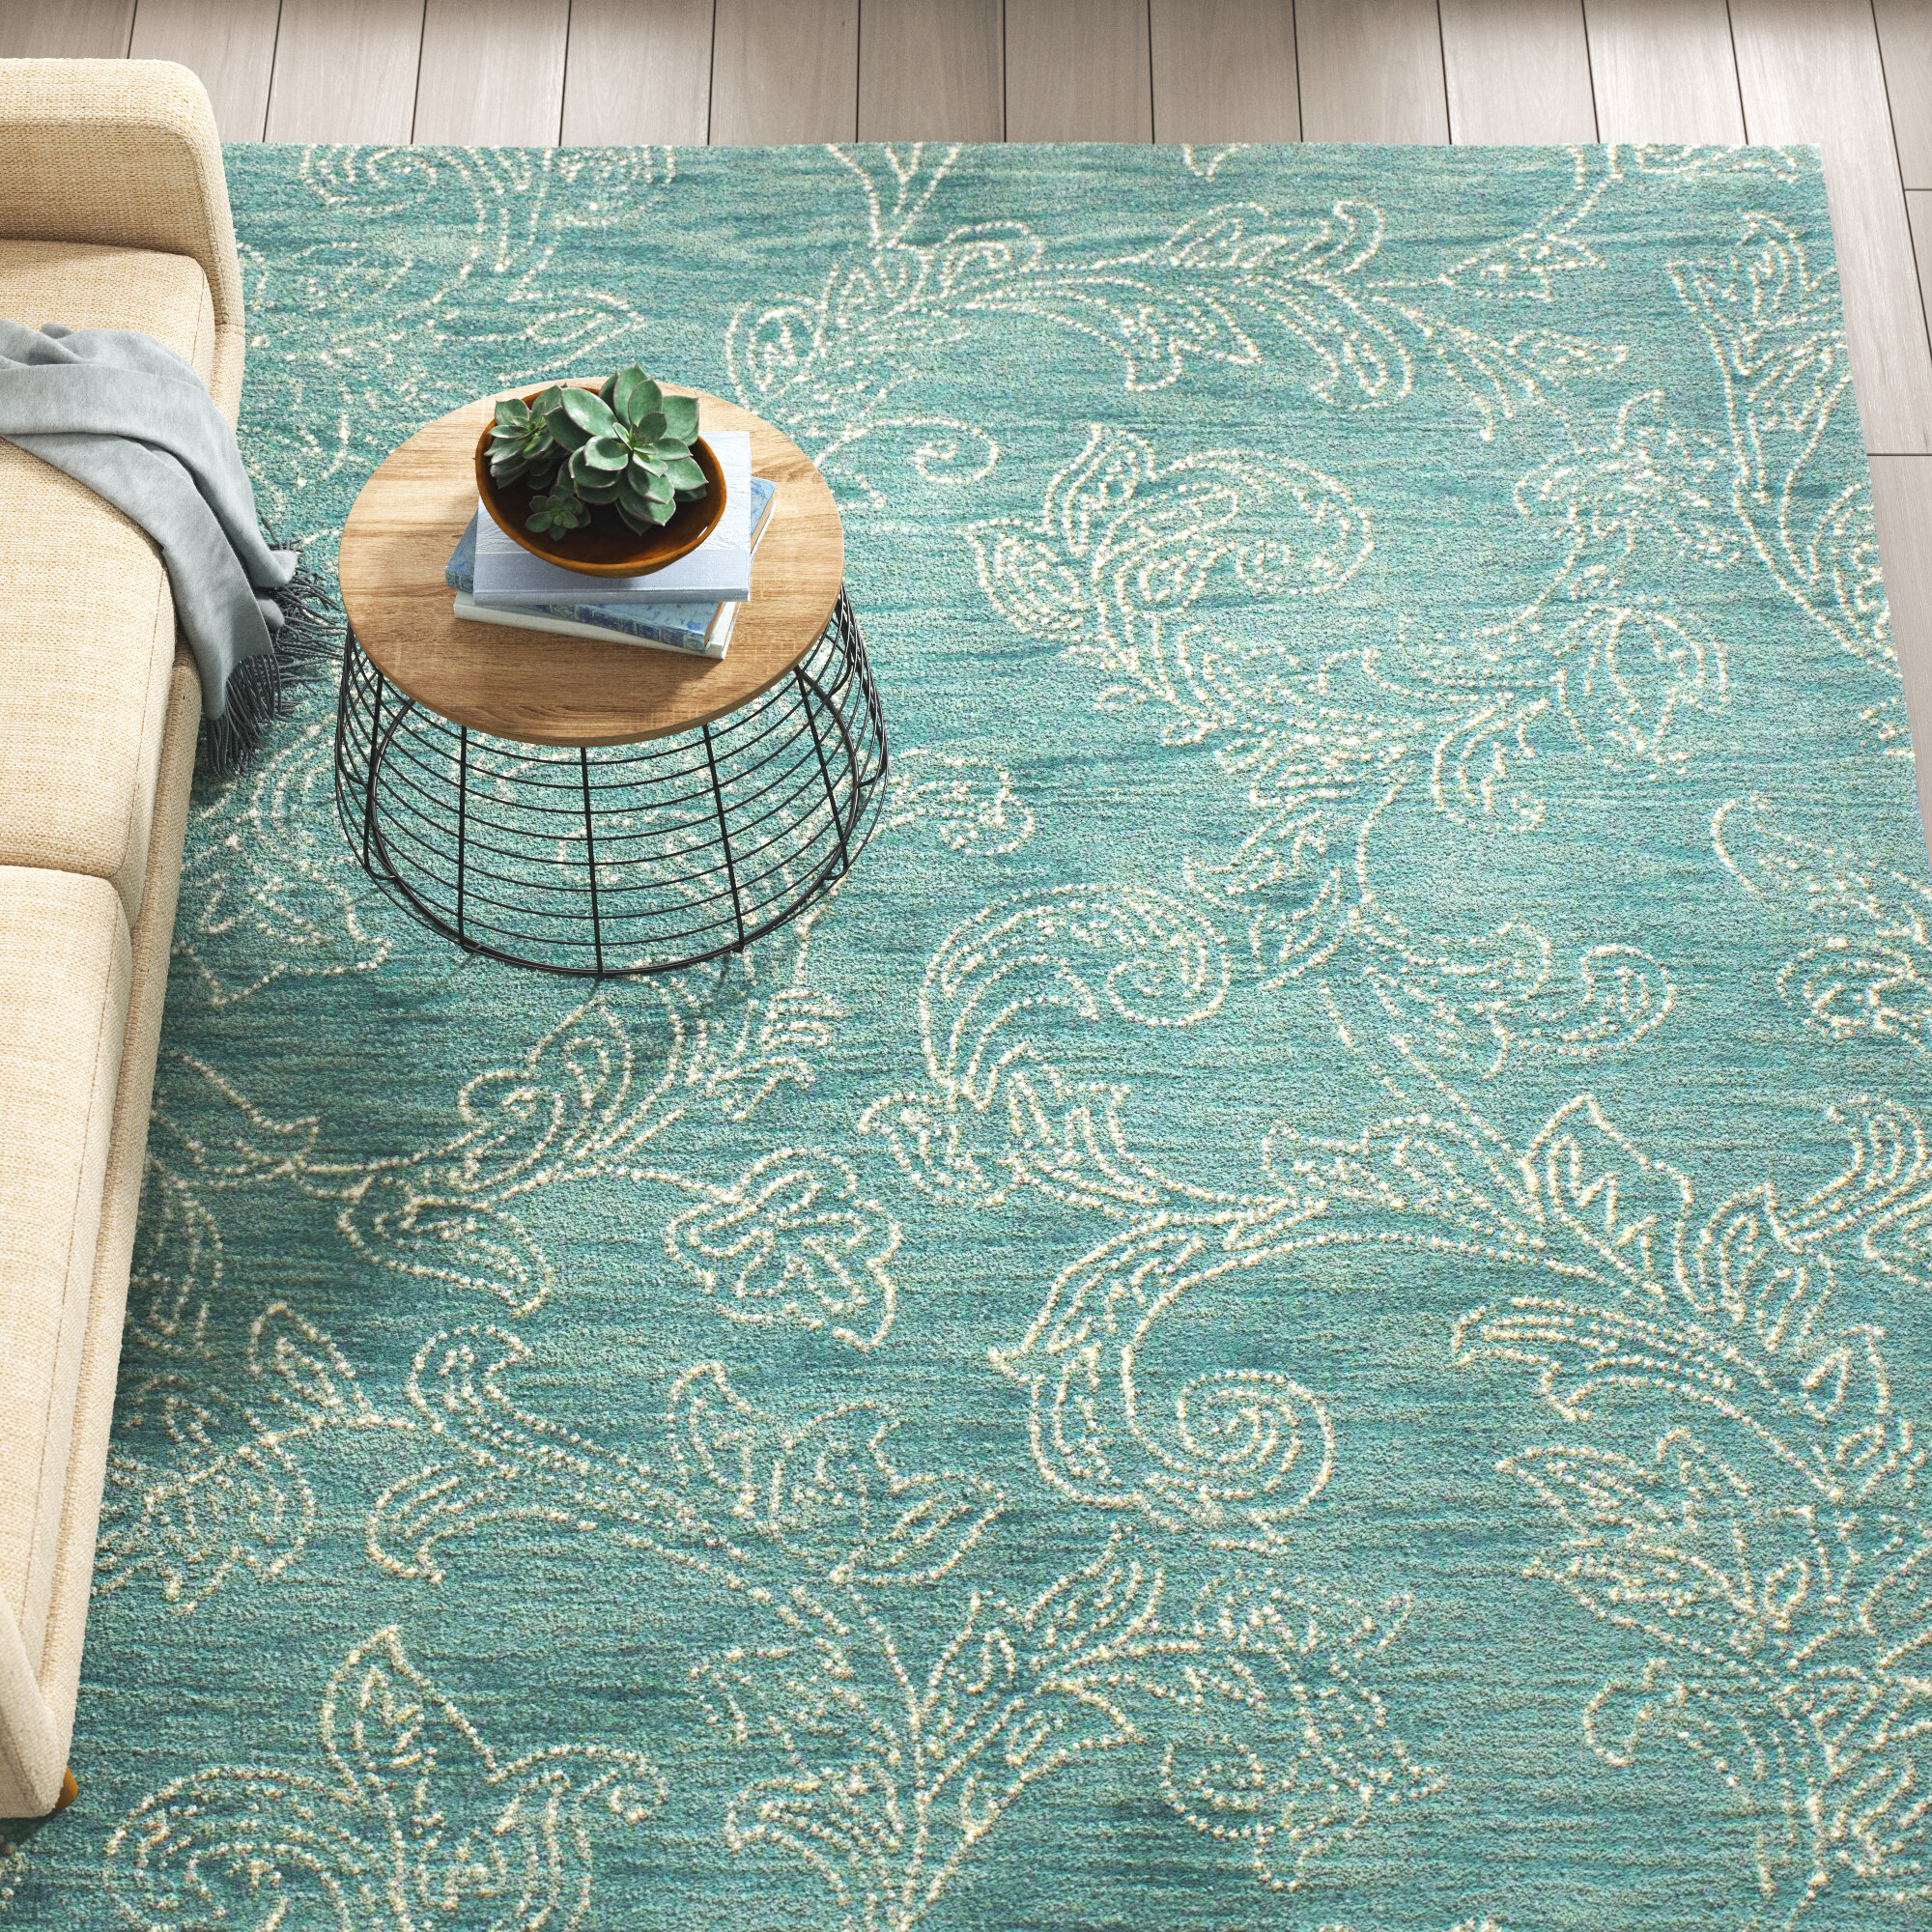 Blue Tufted Area Rugs You Ll Love In 2021 Wayfair